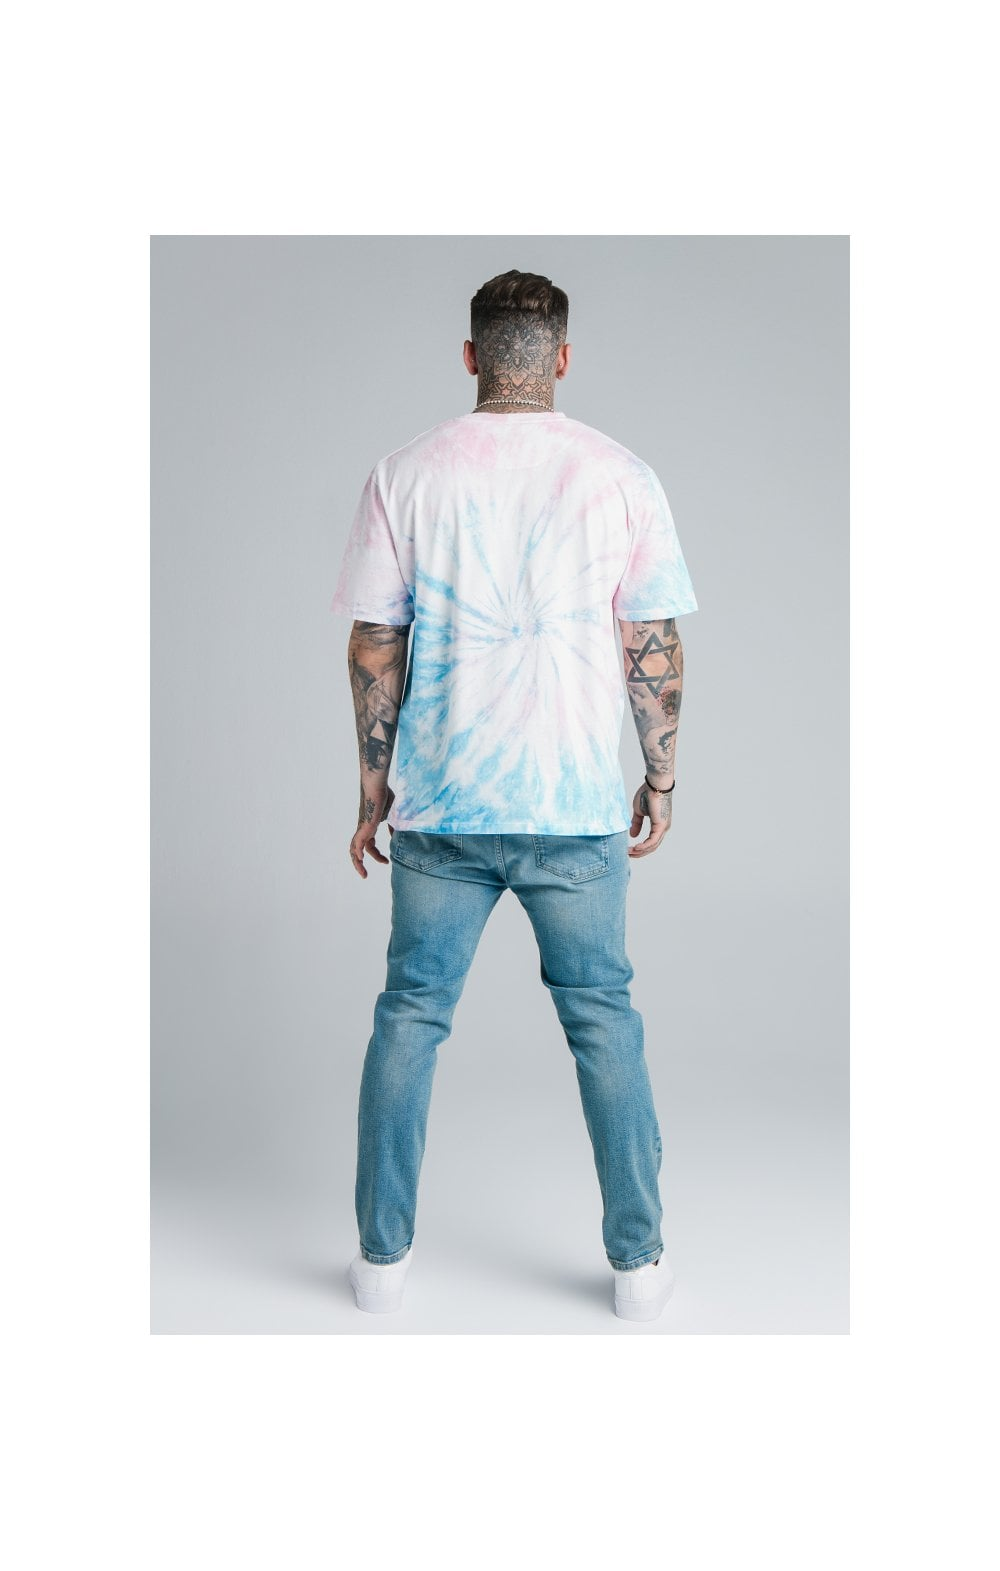 Load image into Gallery viewer, SikSilk X Steve Aoki Loose Fit Riot Denims - Light Wash (6)